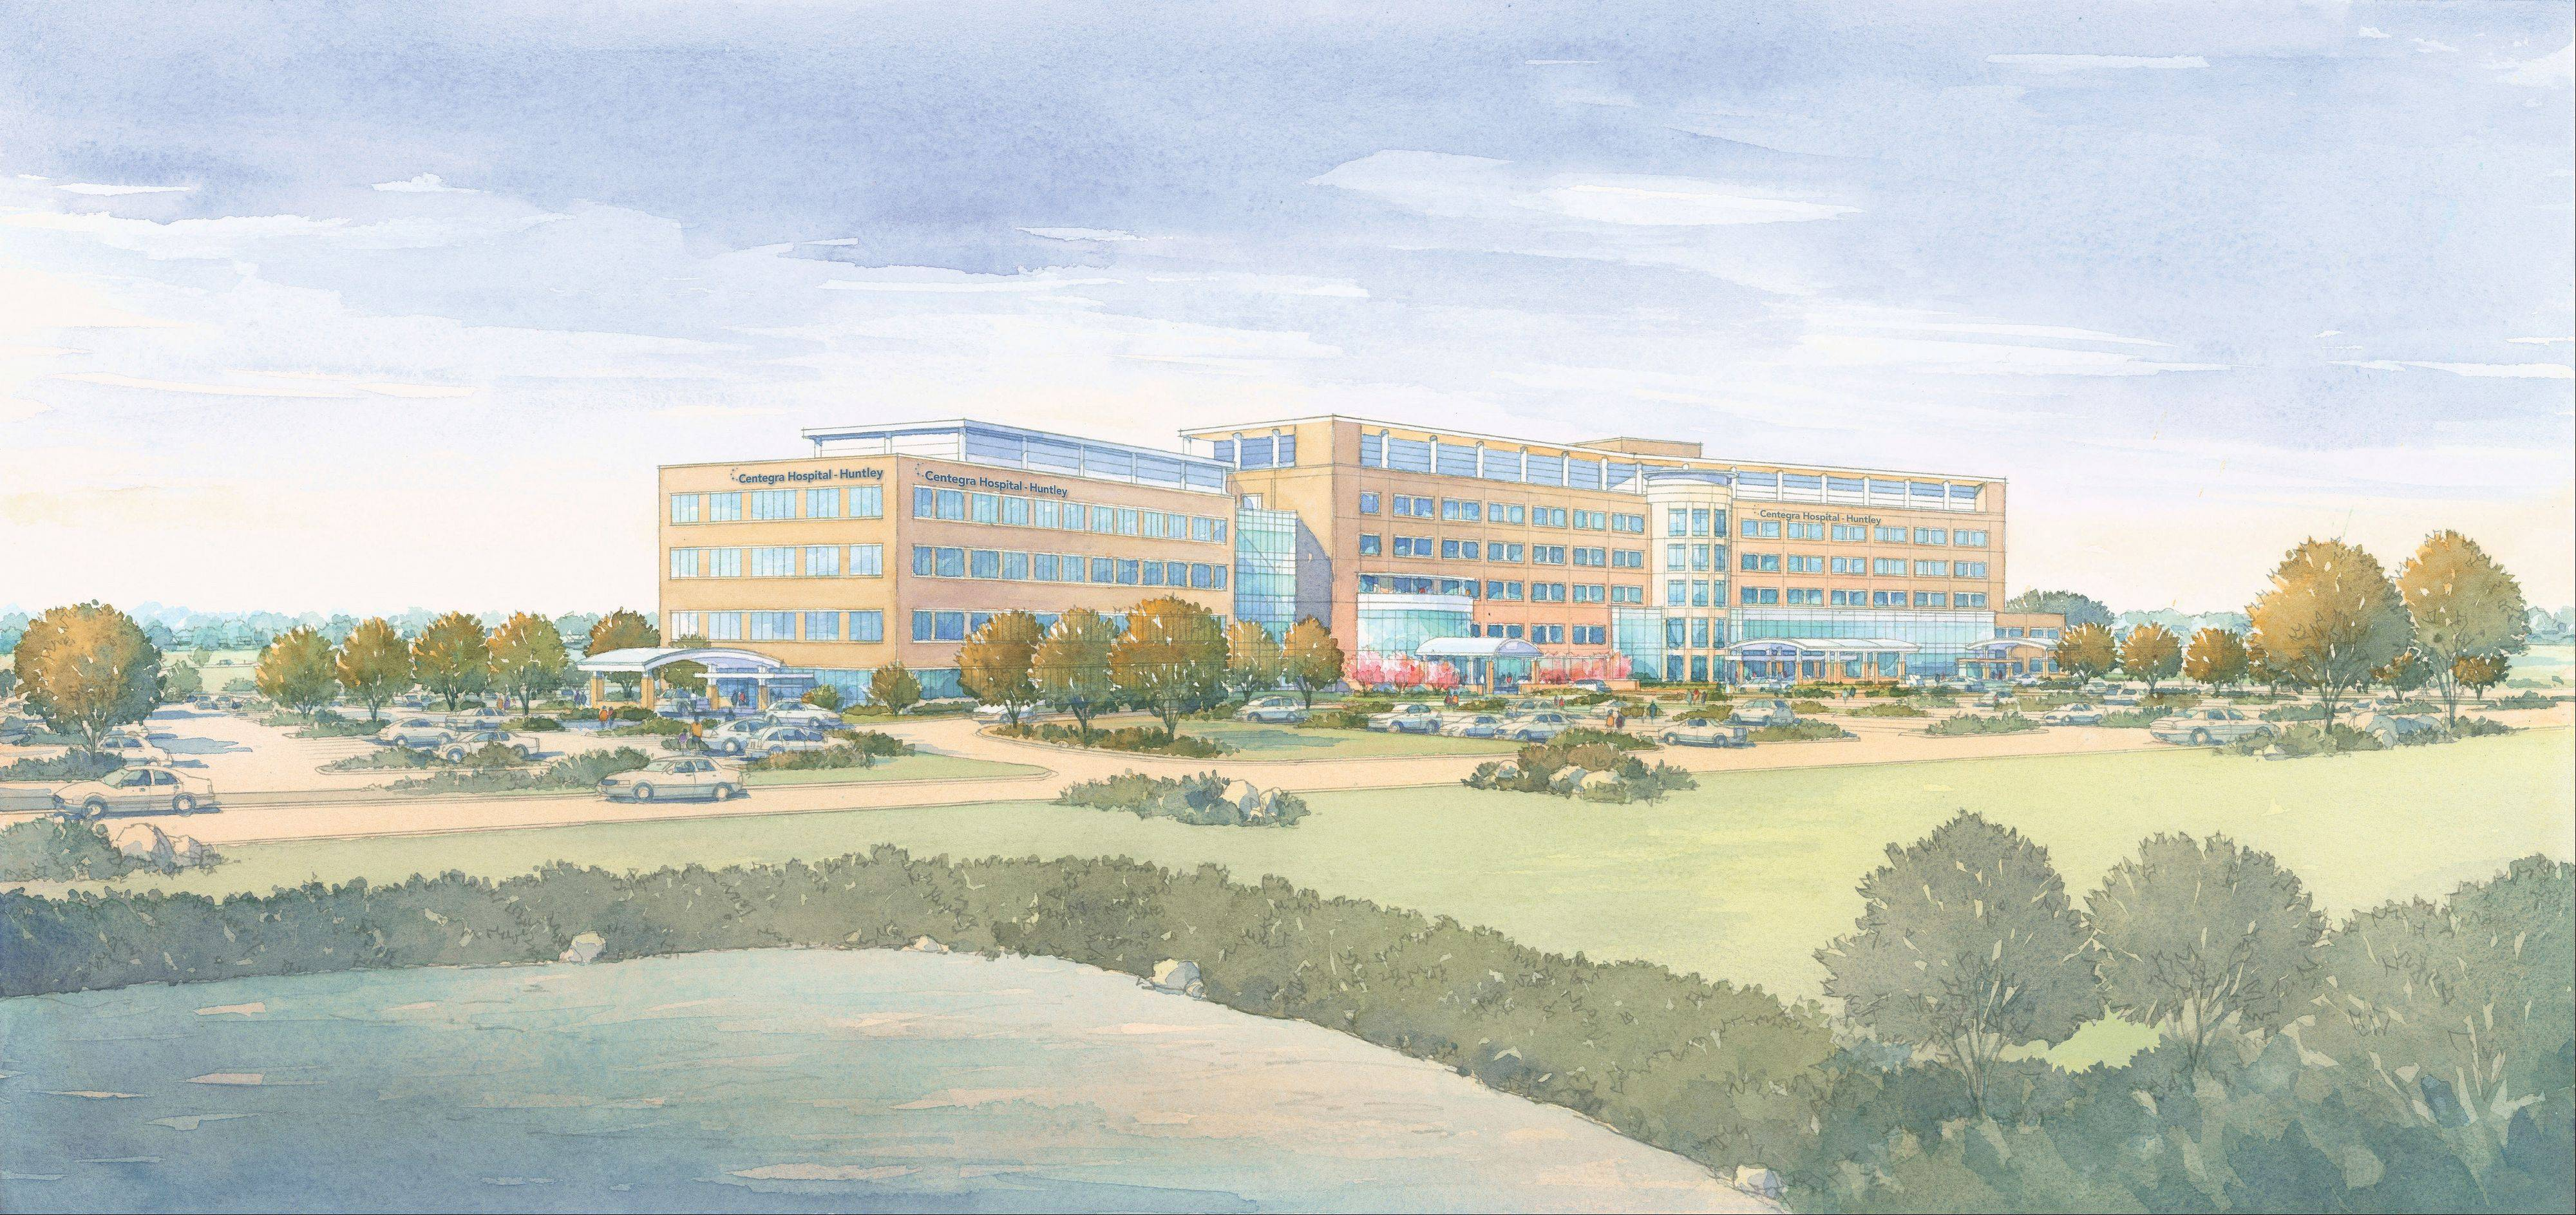 A rendering of the same 128-bed hospital Centegra Health System hopes to build in Huntley.